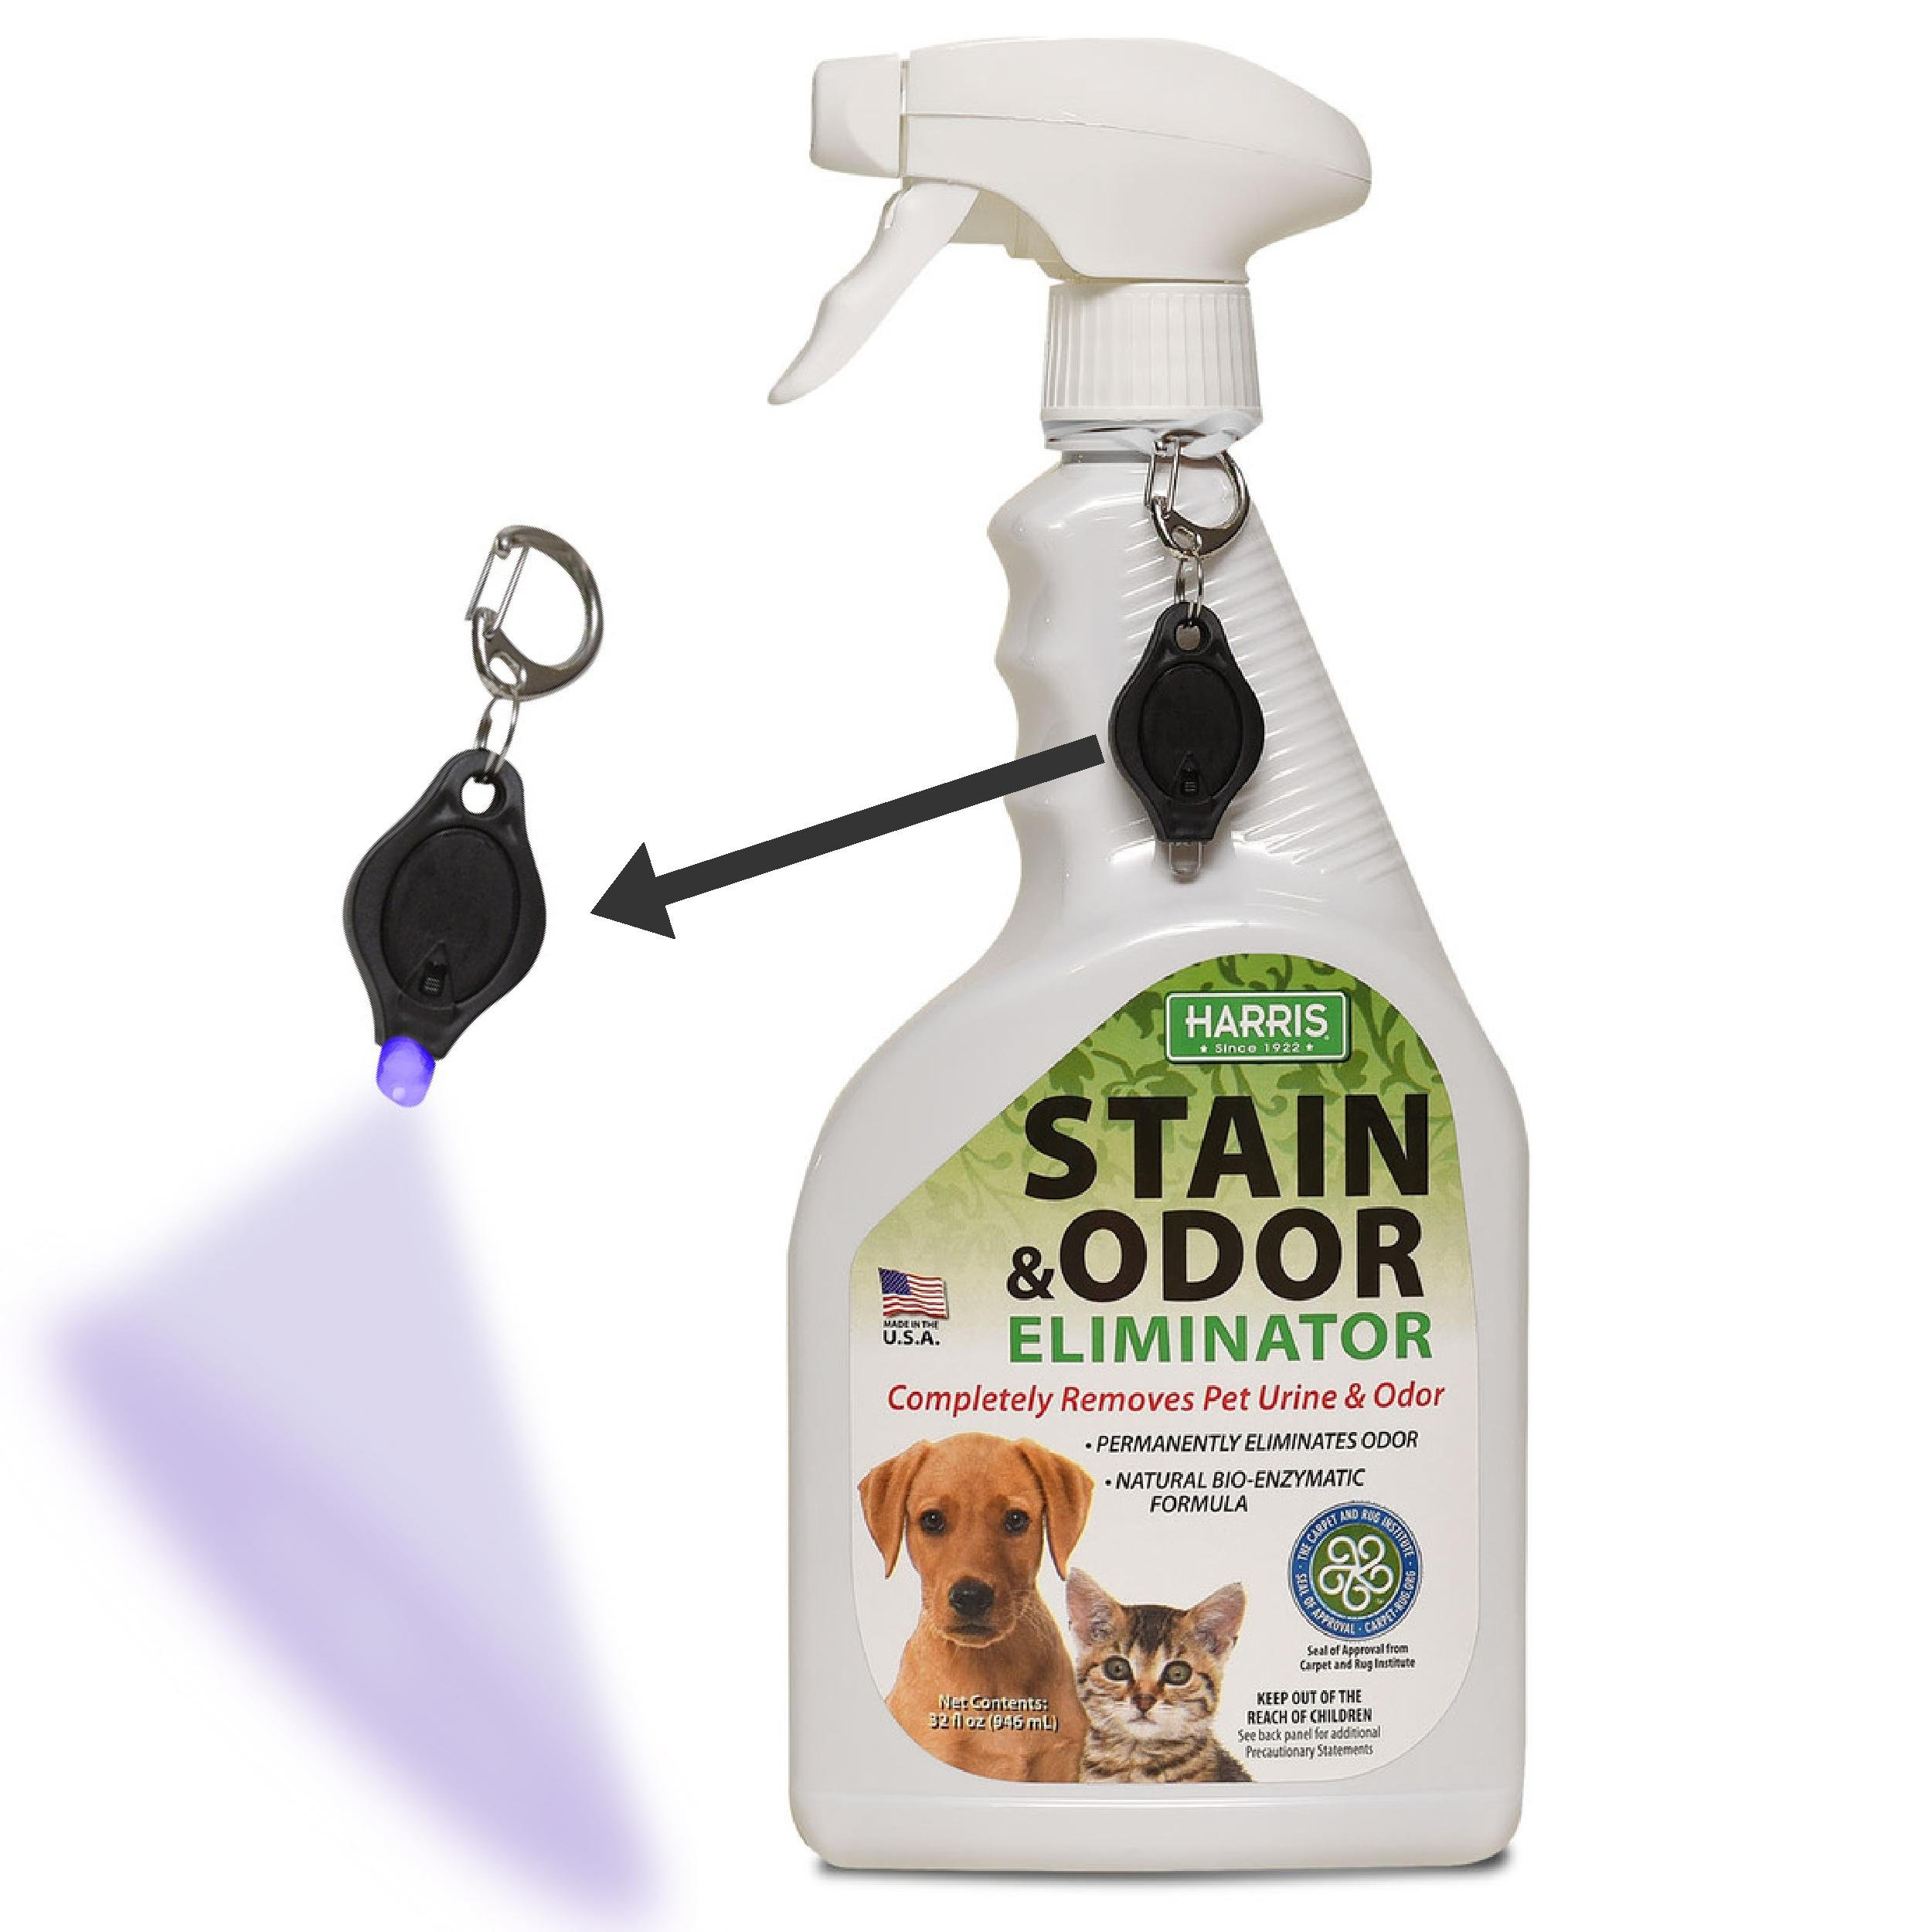 Harris Pet Stain & Odor Remover Natural Enzyme Spray Free Stain Detection Blacklight, 32oz Dog Cat Urine